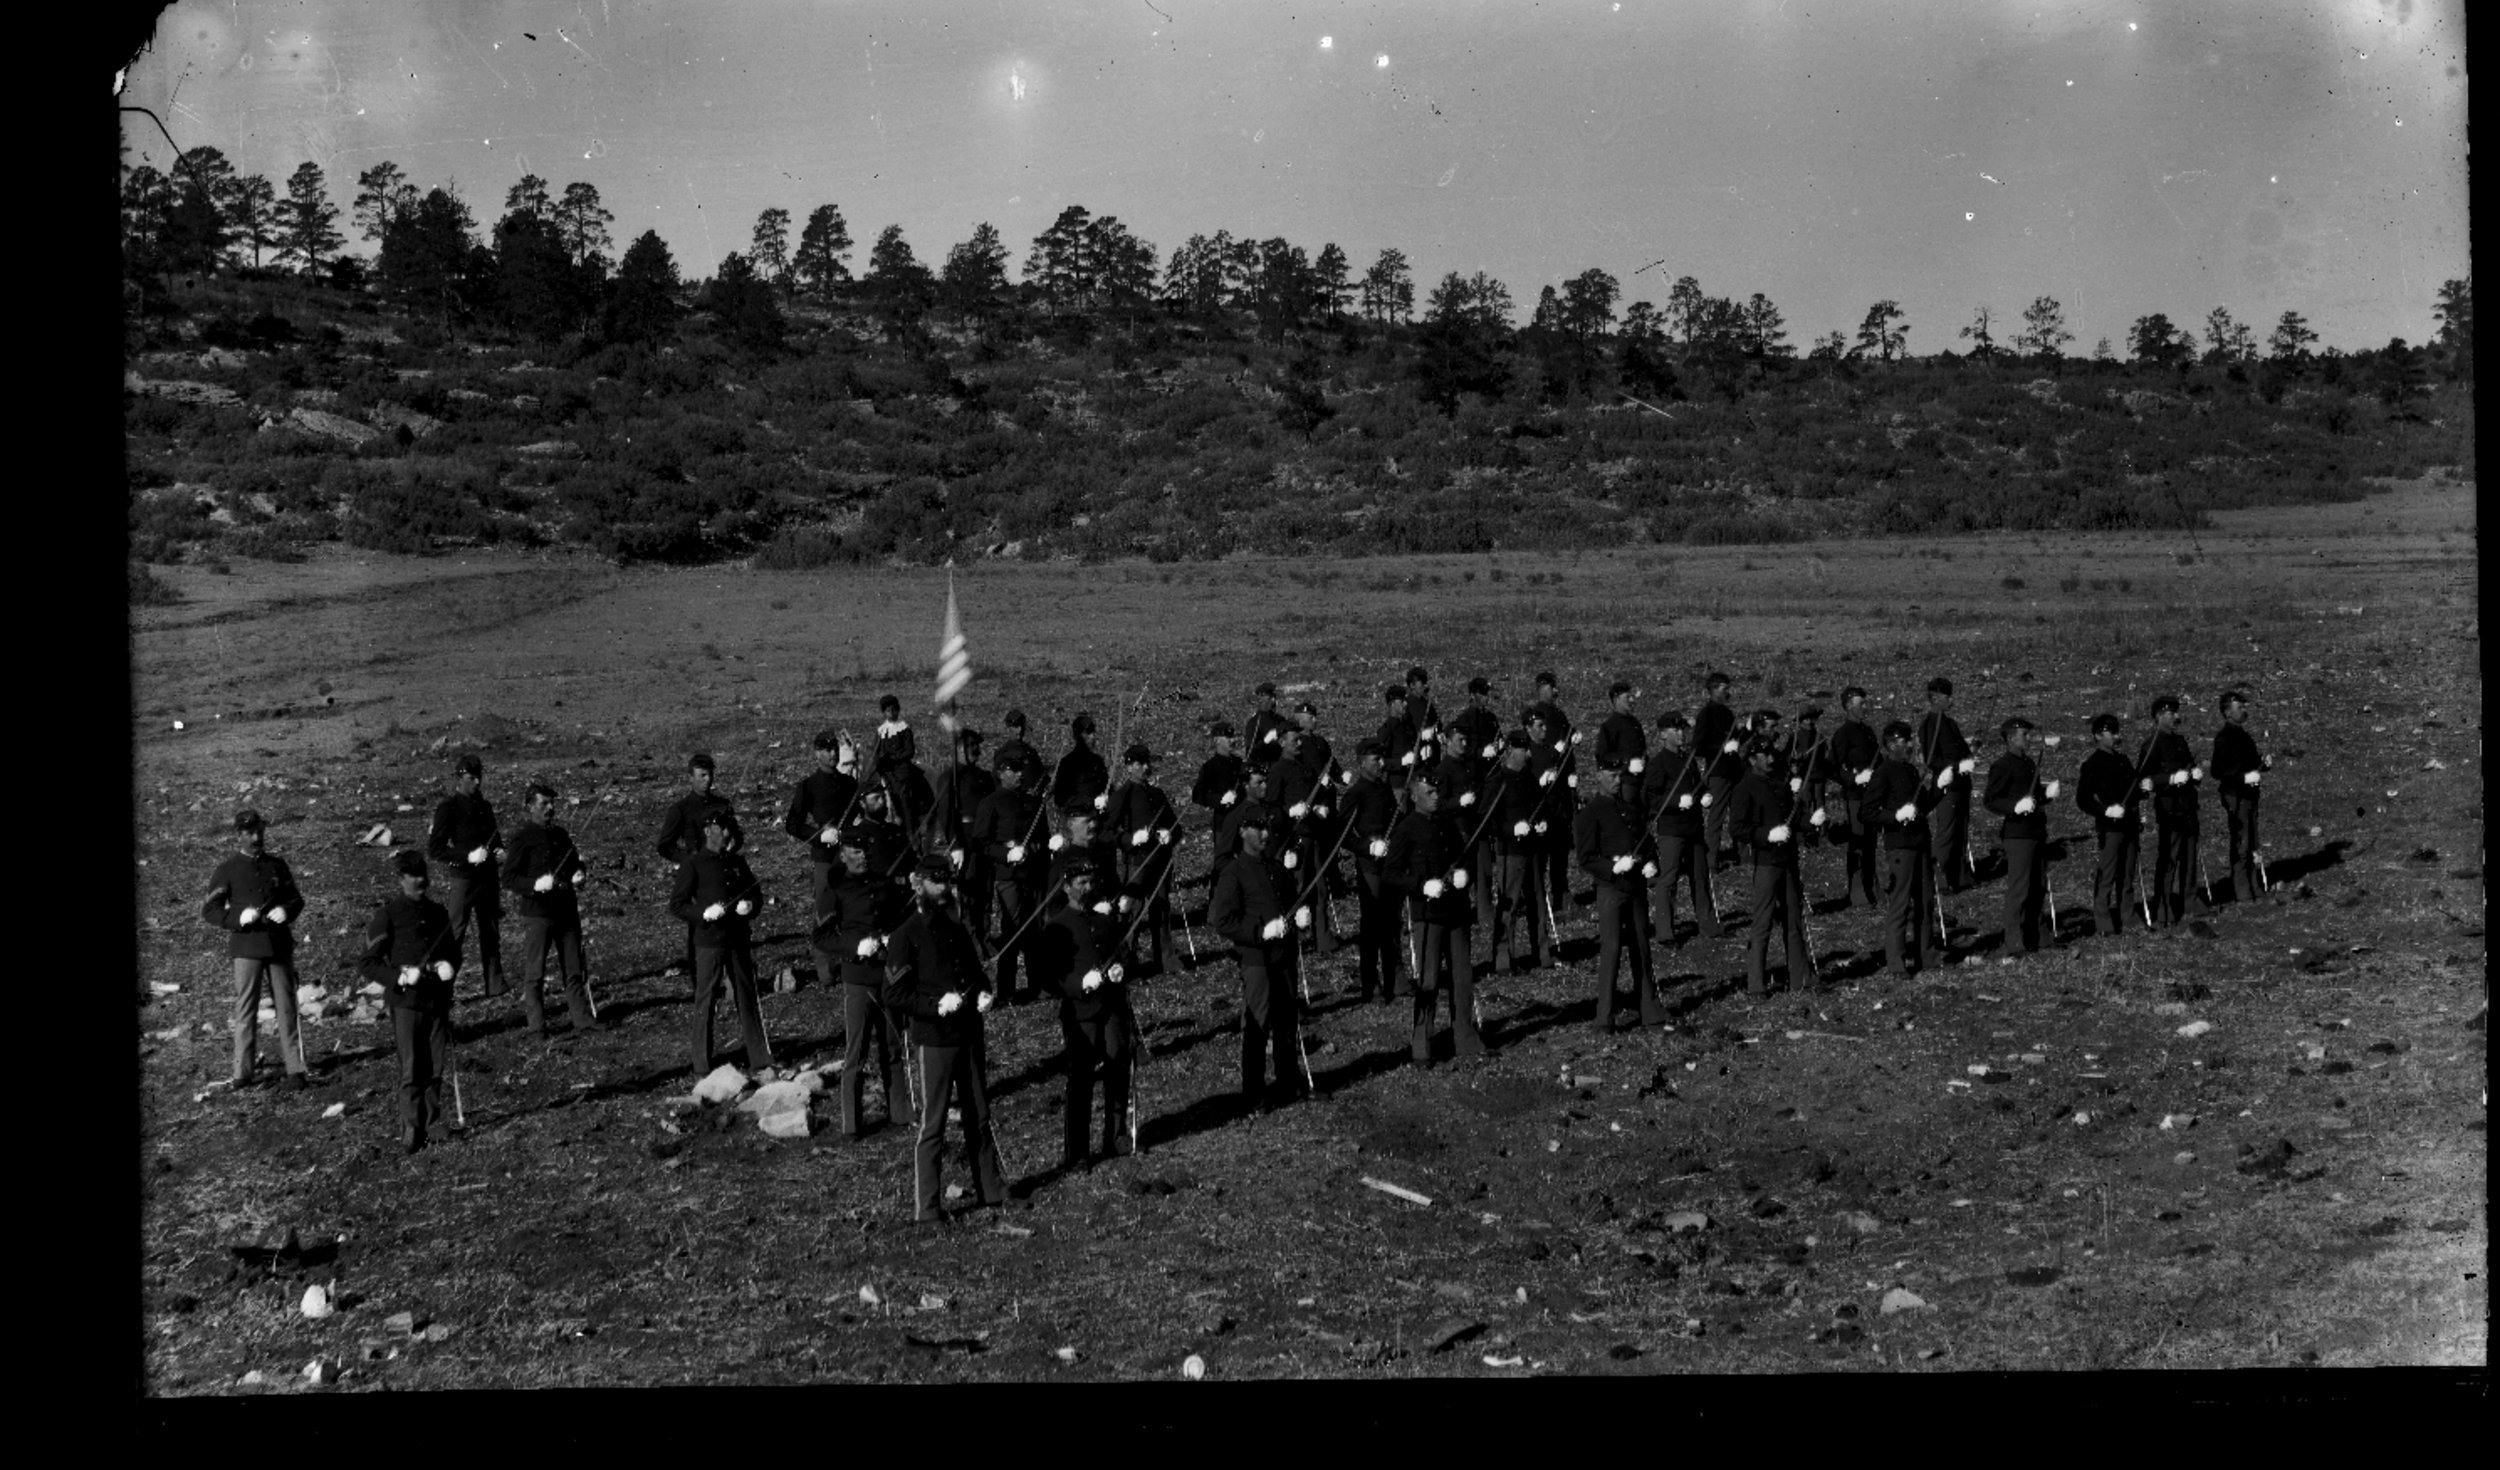 Fort Lyon and Fort Union - Troop E, 6th Cavalry stationed at Fort Union, New Mexico. Troops are lined up with swords. Neg #1